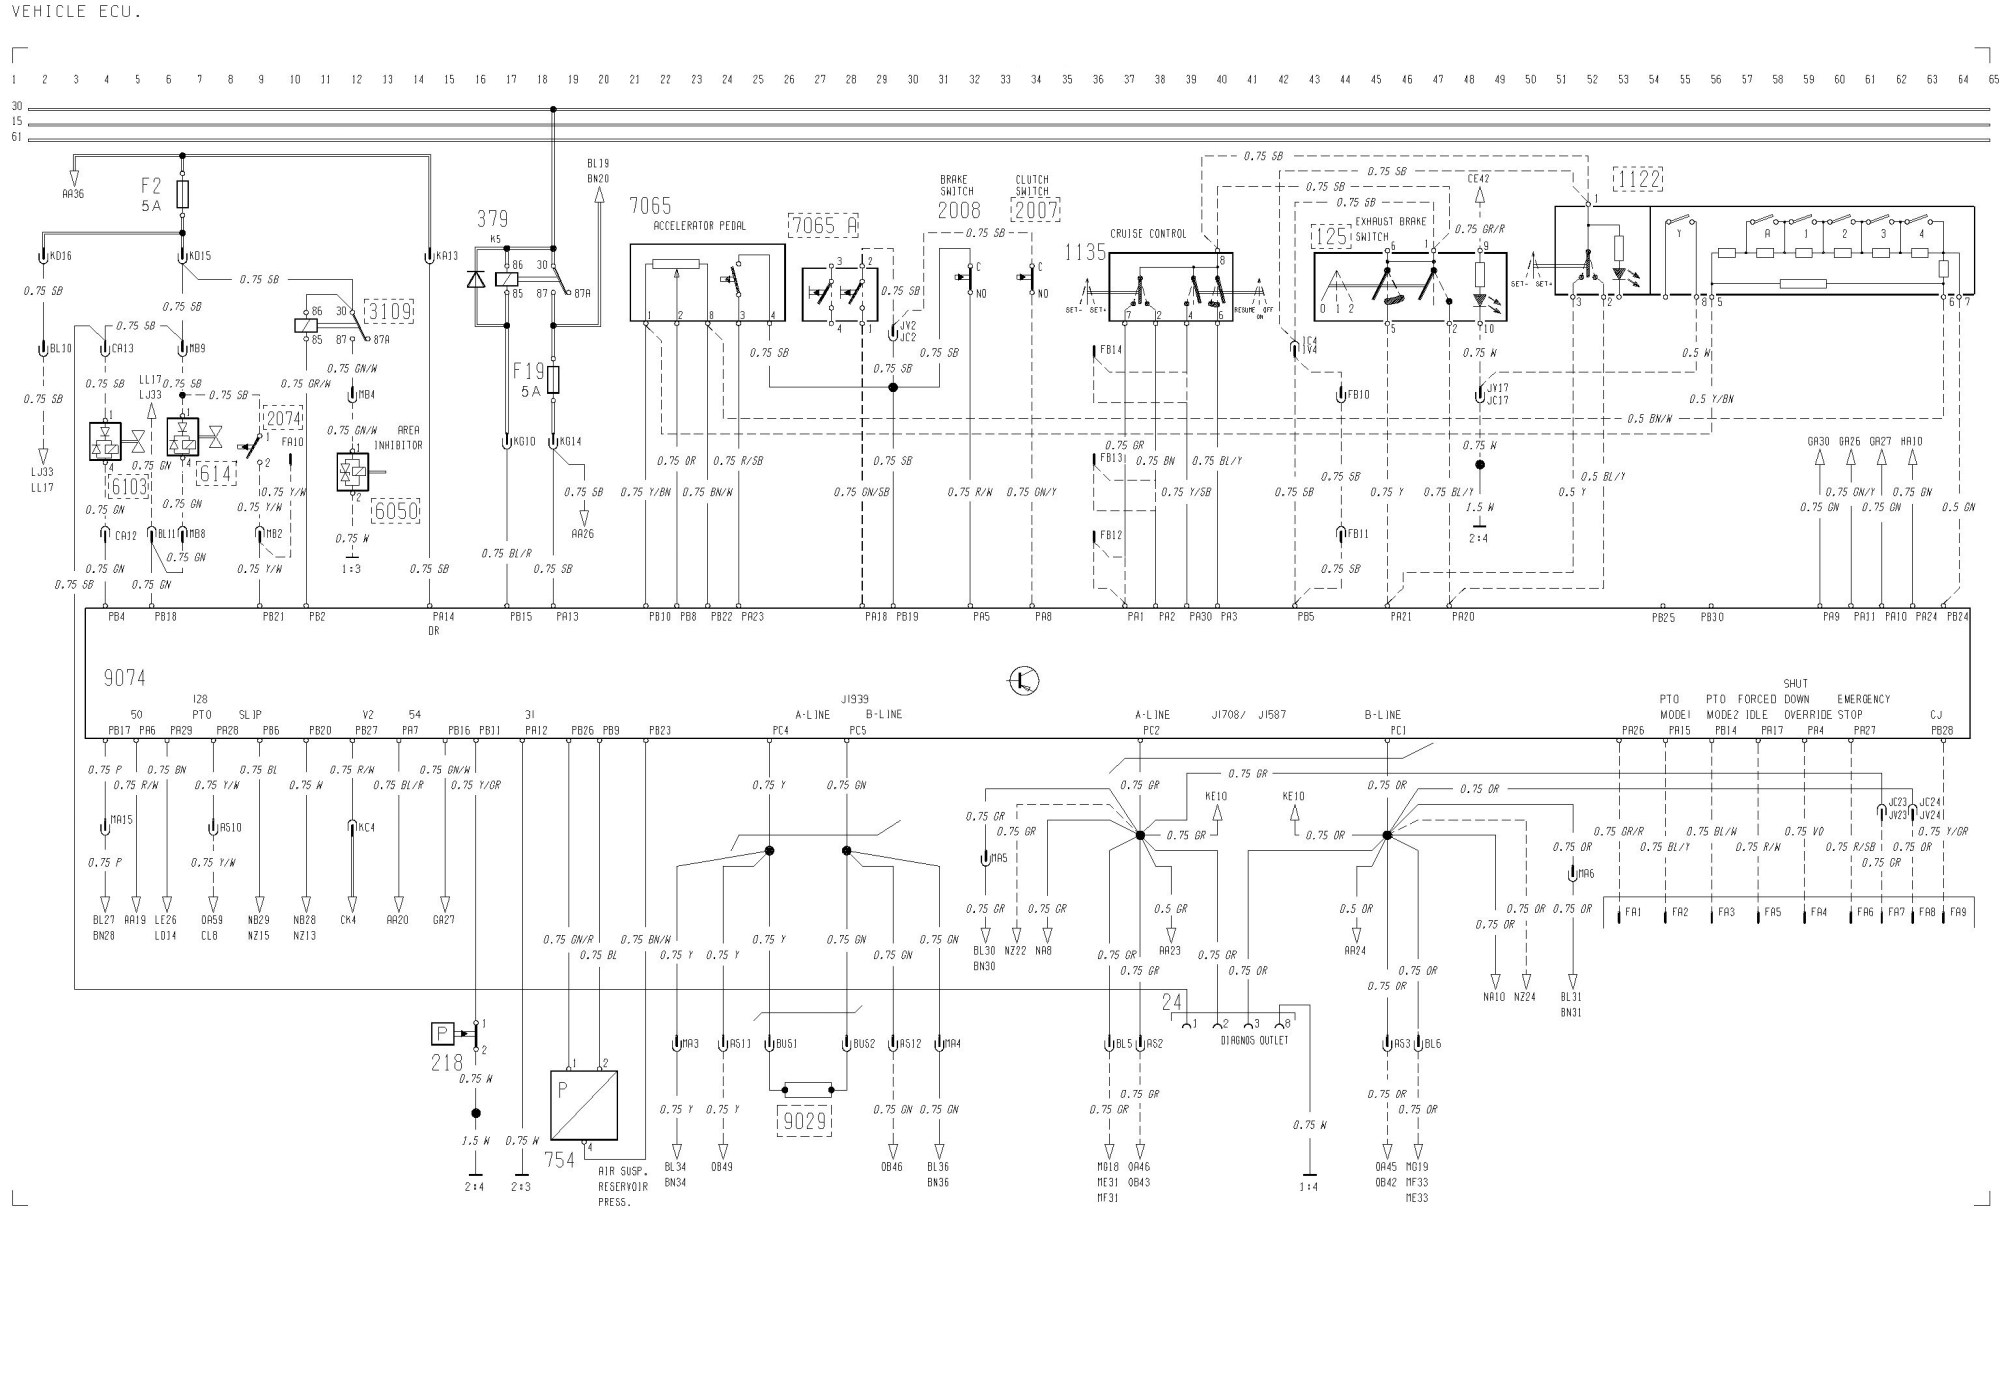 hight resolution of volvo fh12 fh16 lhd wiring diagrams vehicle ecu